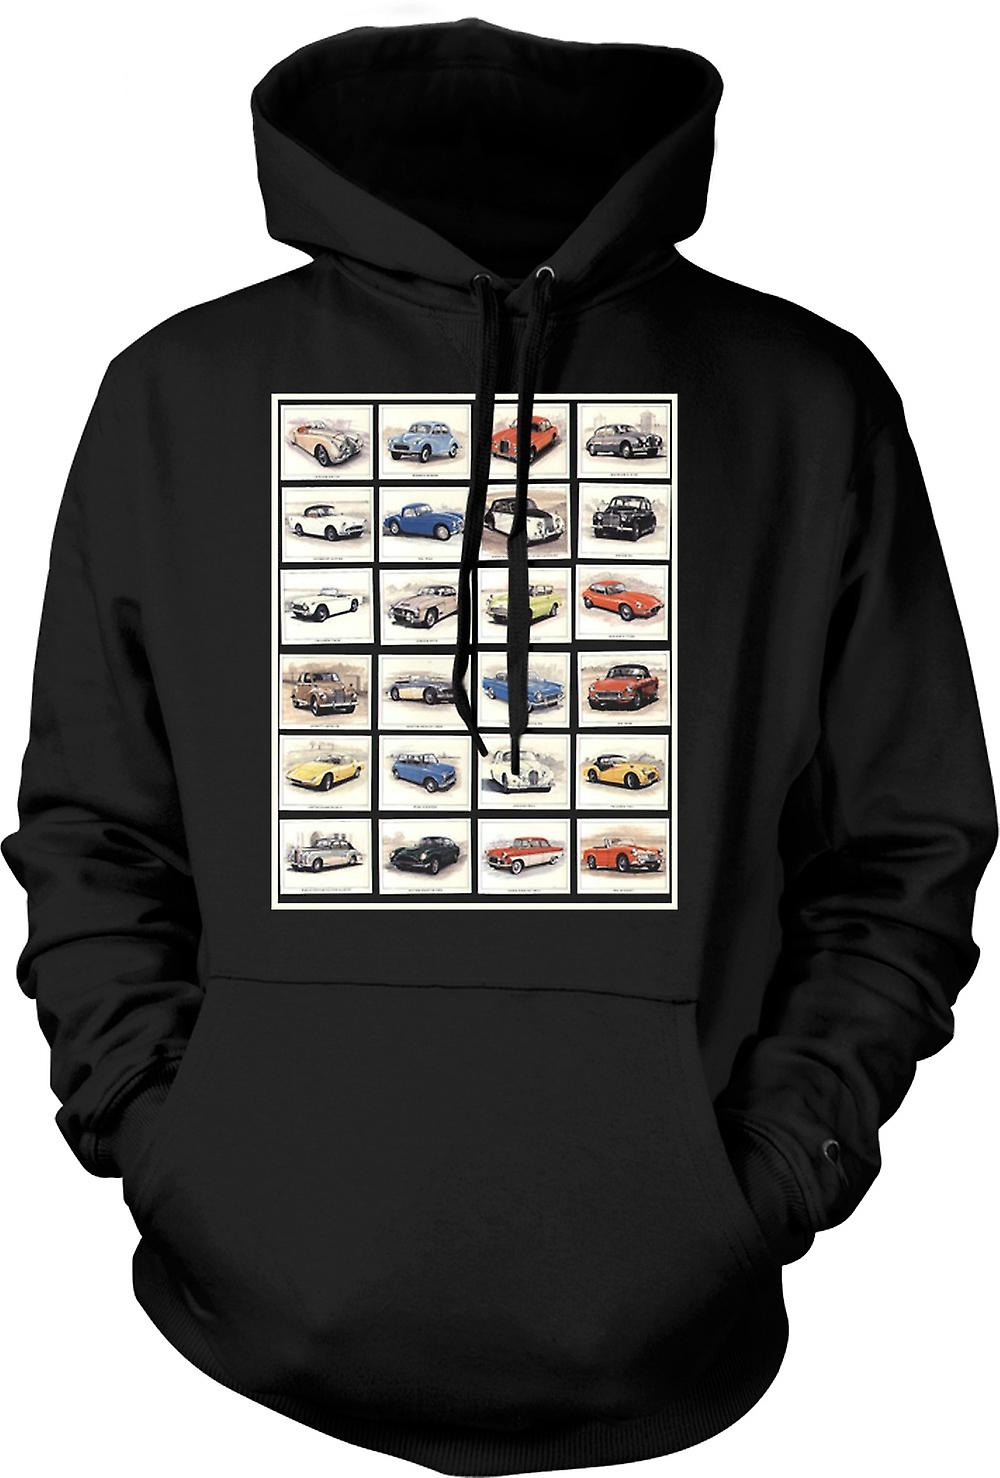 Mens Hoodie - Classic Motor Car Collage - Poster